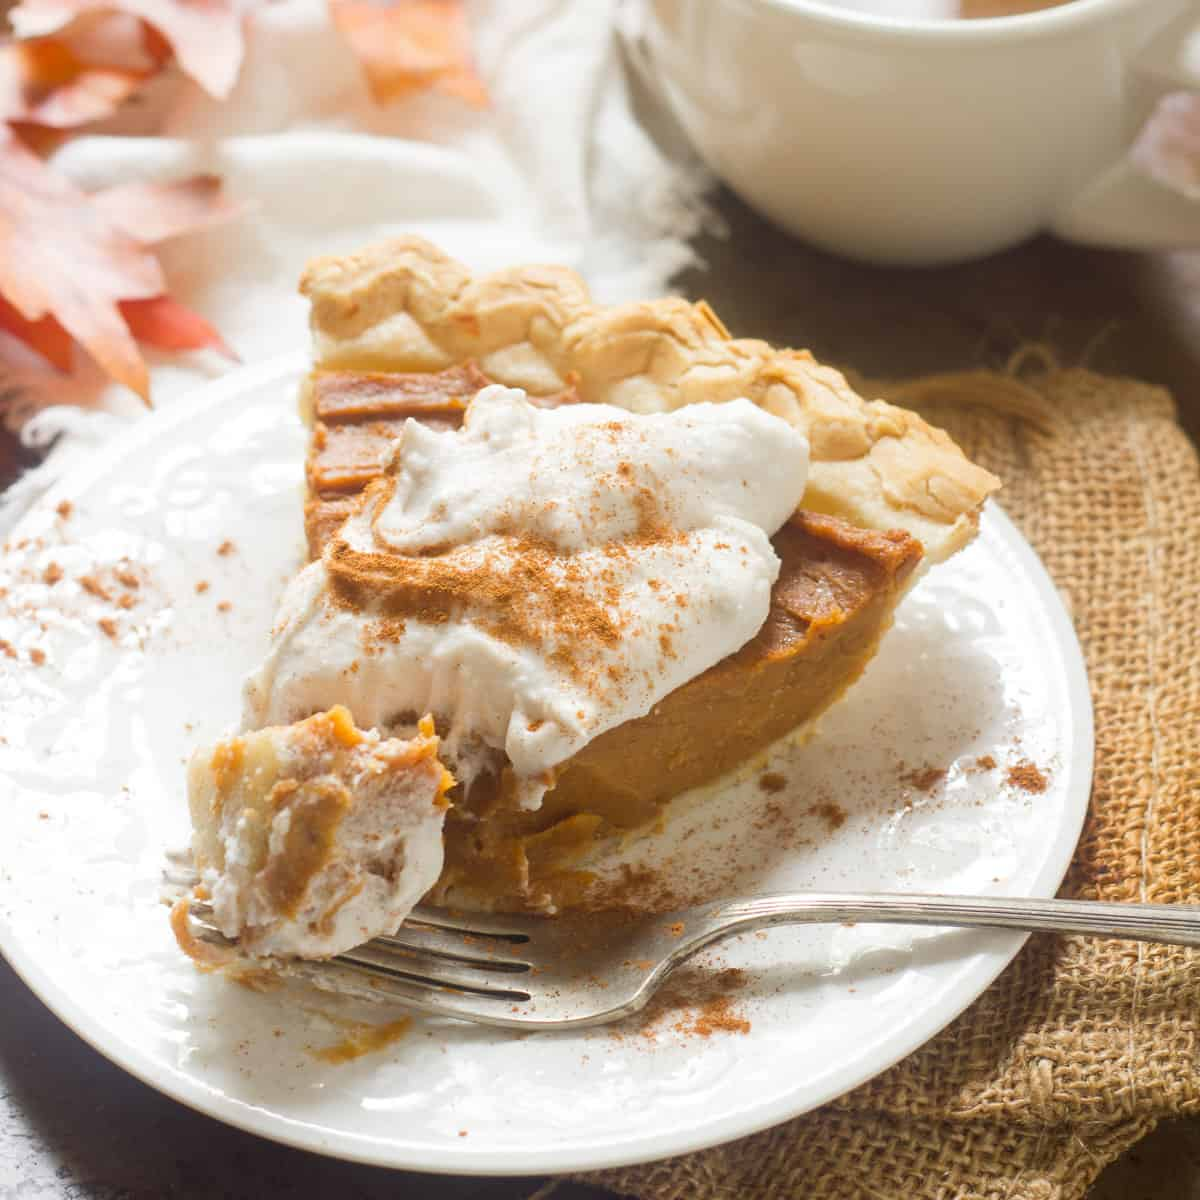 Slice of Vegan Sweet Potato Pie with Whipped Coconut Cream on Top and Fork.